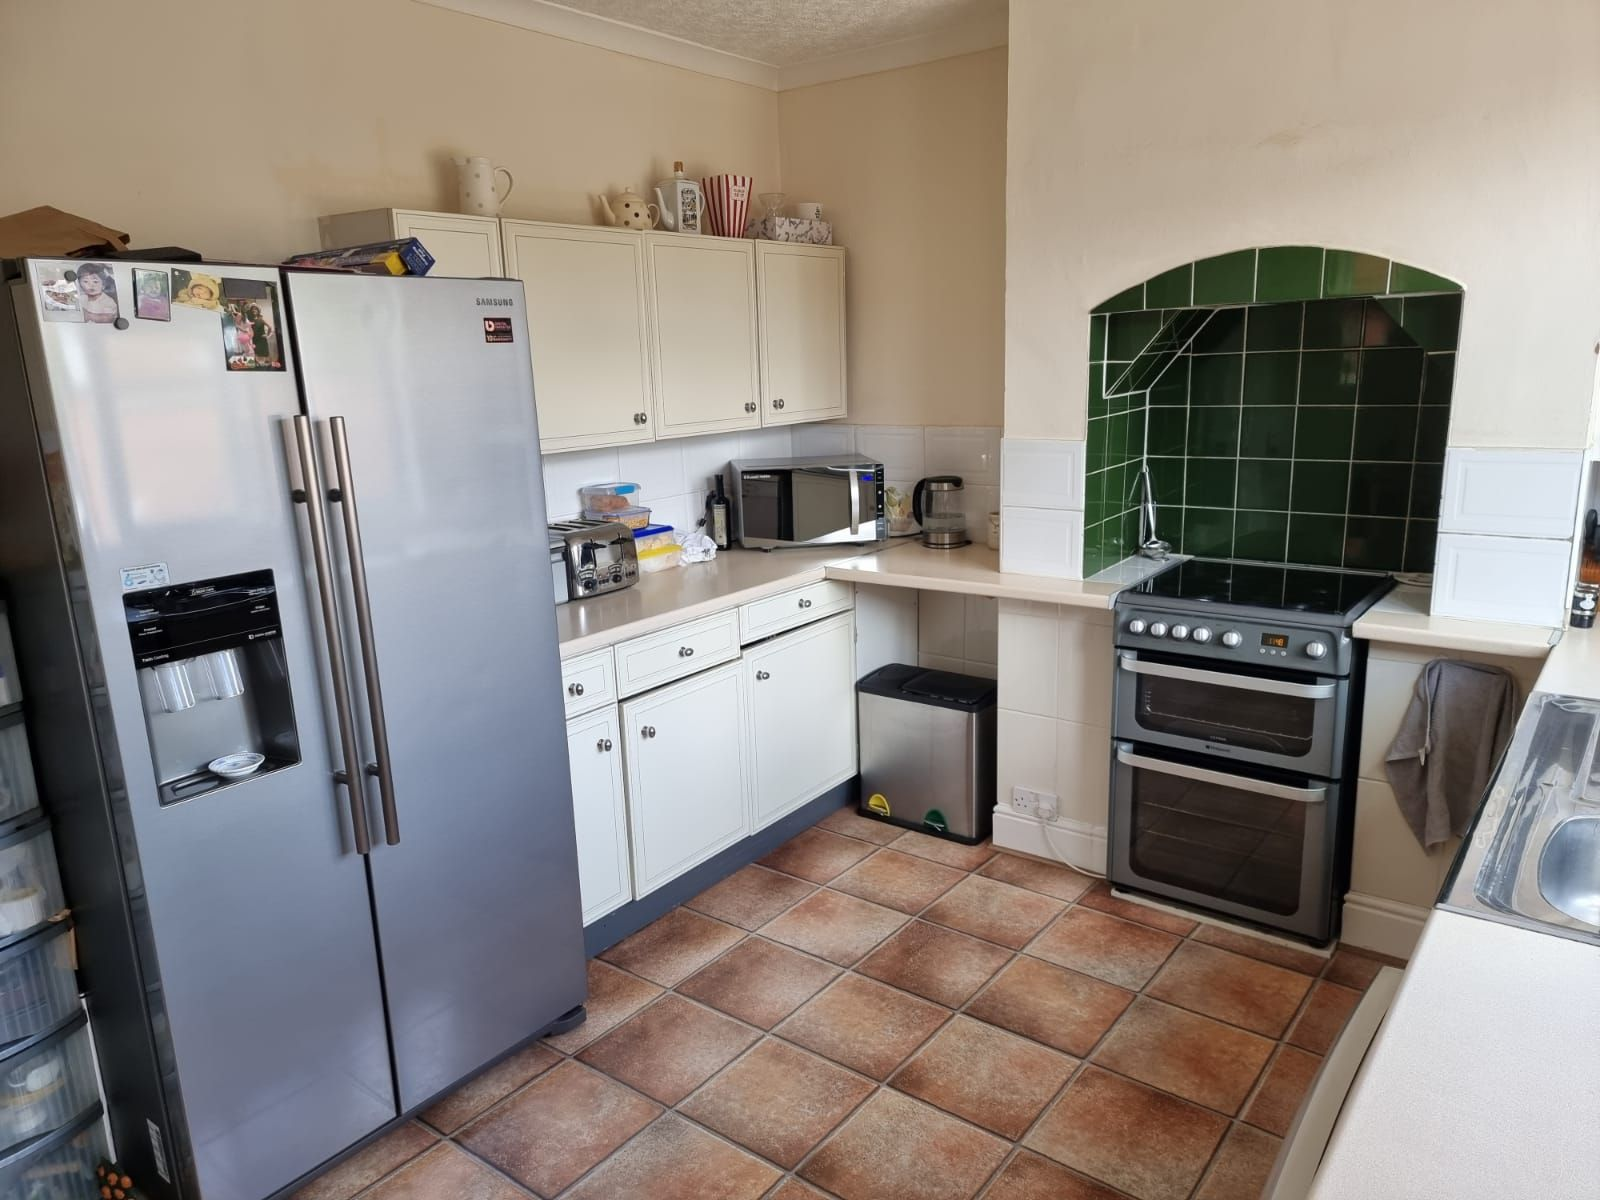 3 bedroom semi-detached house SSTC in Leicester - Photograph 4.